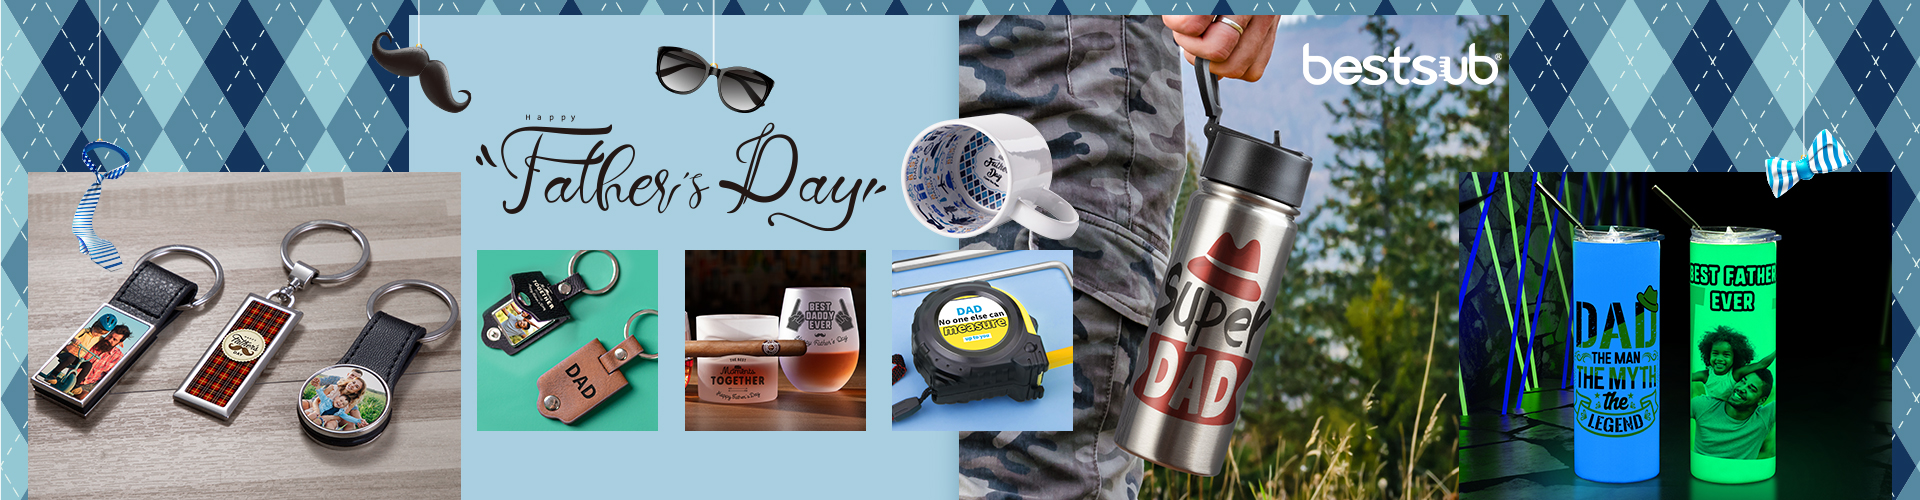 2021-06-01_Happy-Fathers-Day_new_web